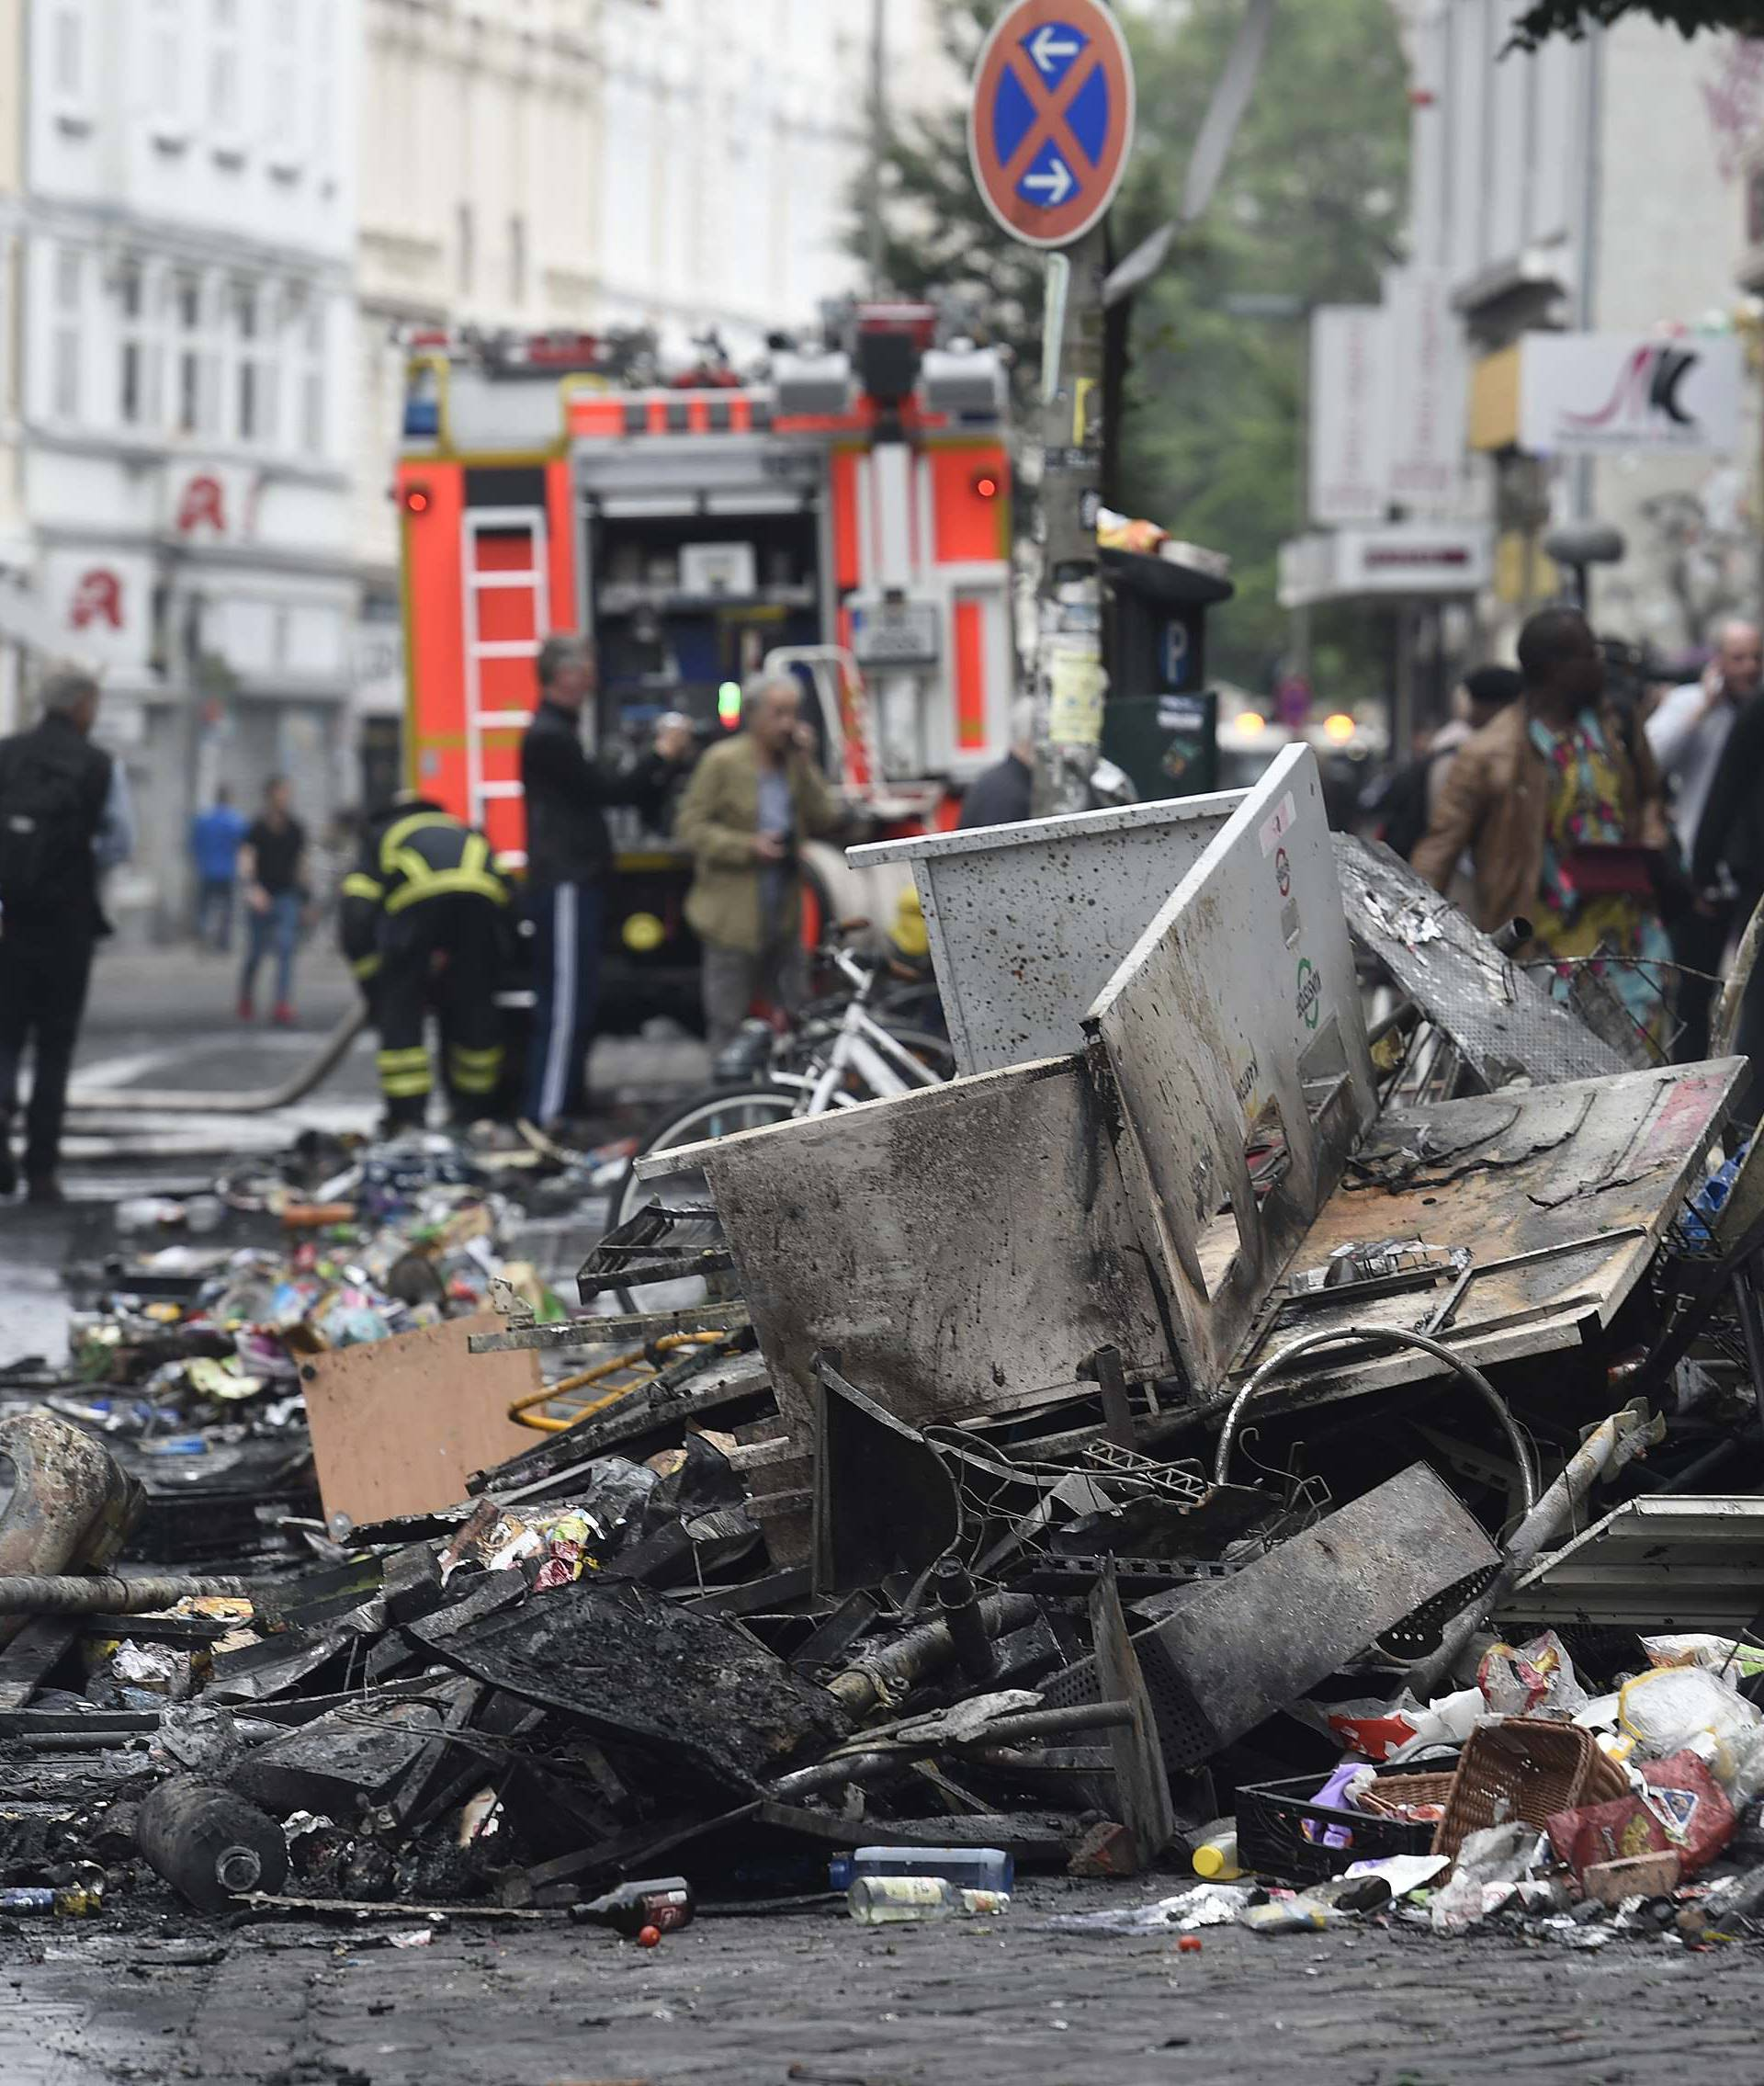 Damages are seen on a street after demonstrations at the G20 summit in Hamburg